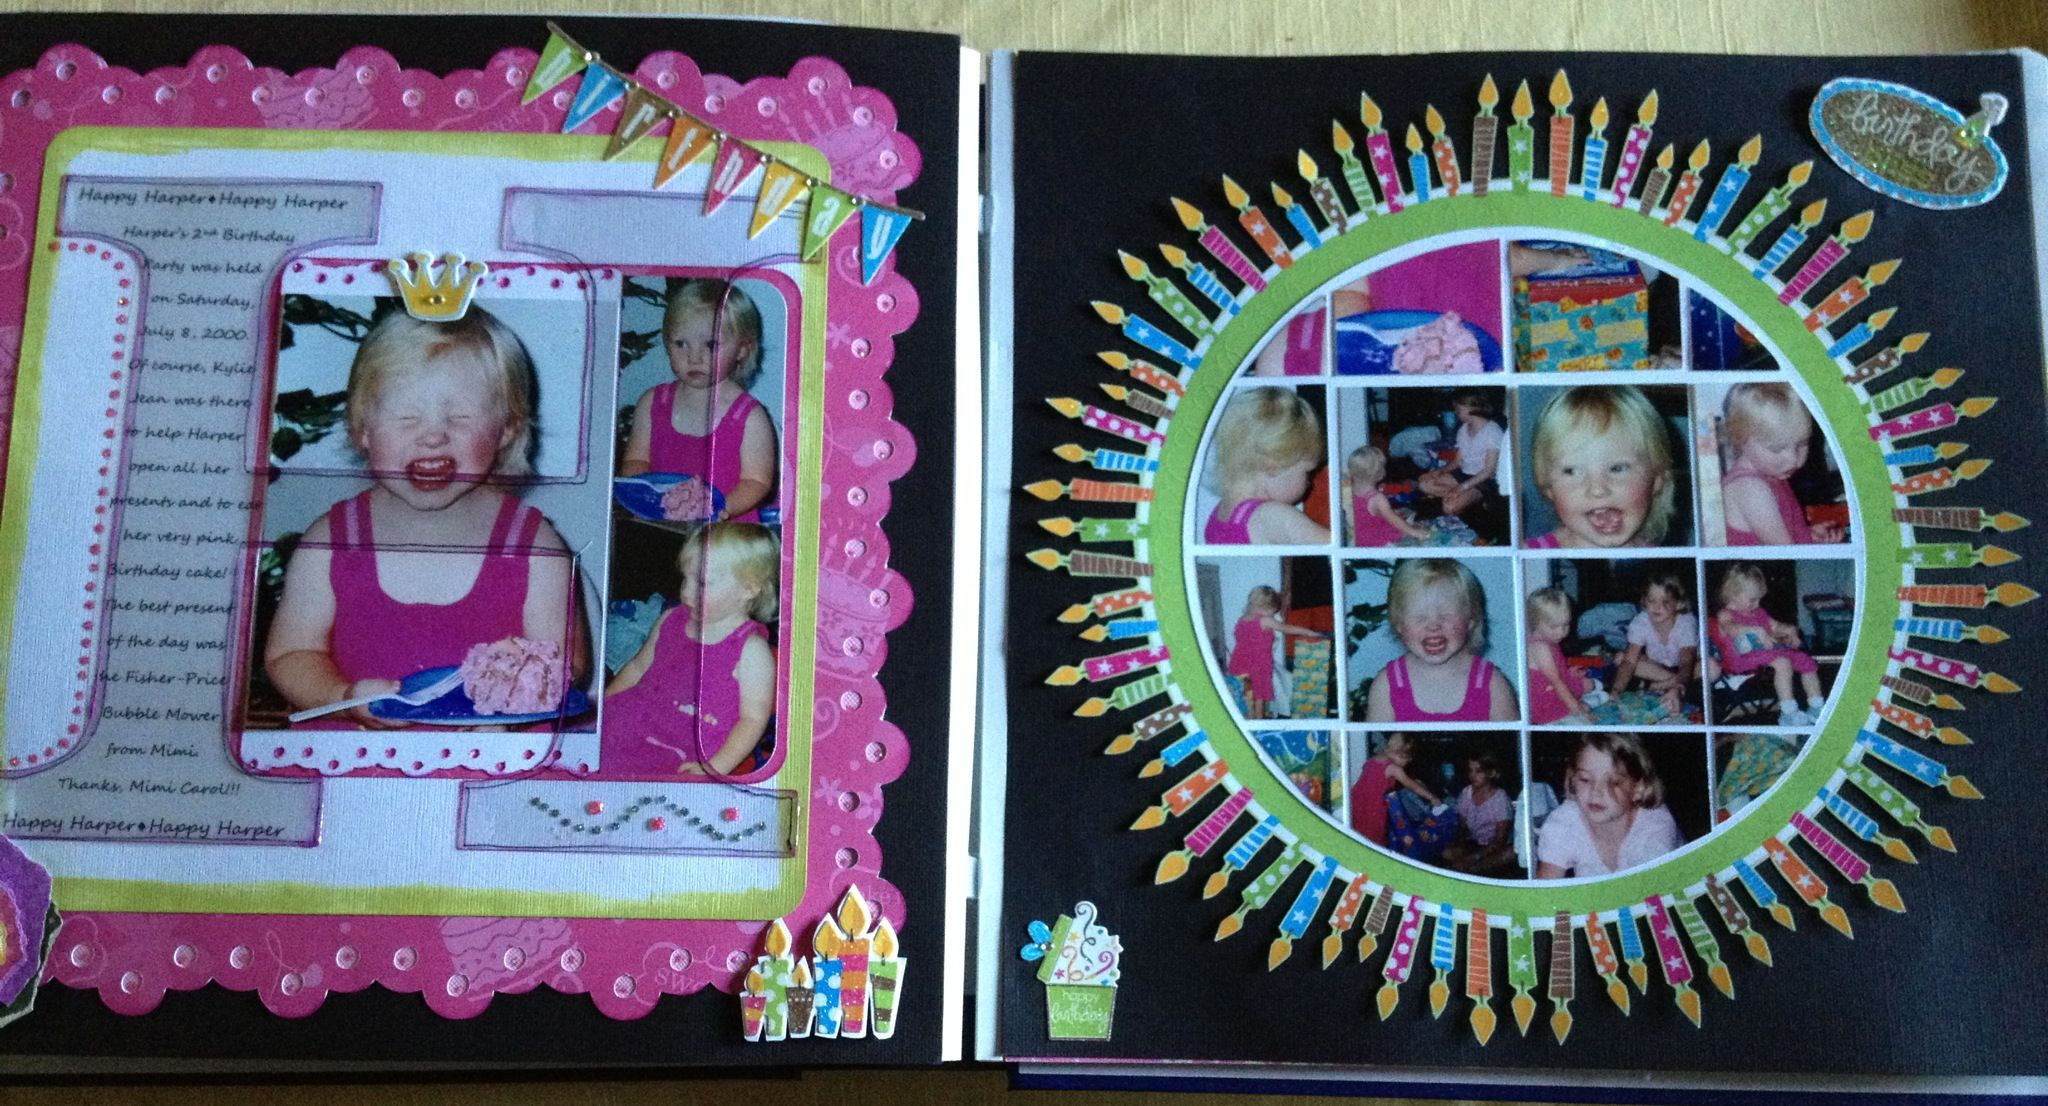 Scrapbook ideas many pictures - Scrapbook 2 Page Layout For Birthday Party With Many Candles